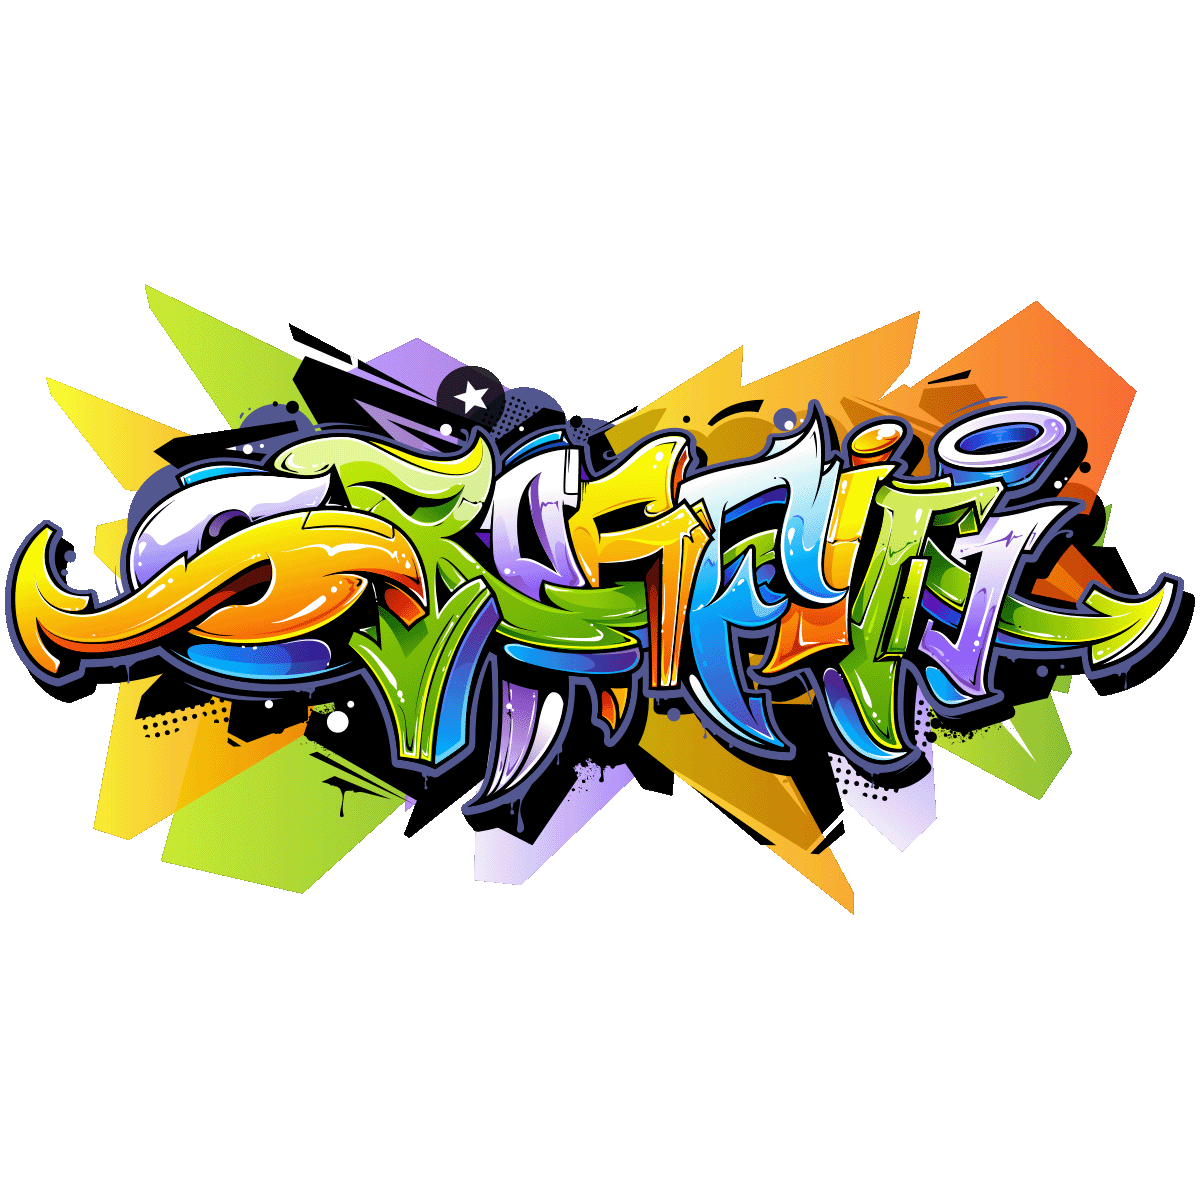 Sticker Graffiti Multi Couleurs Stickers Art Et Design Graffitis